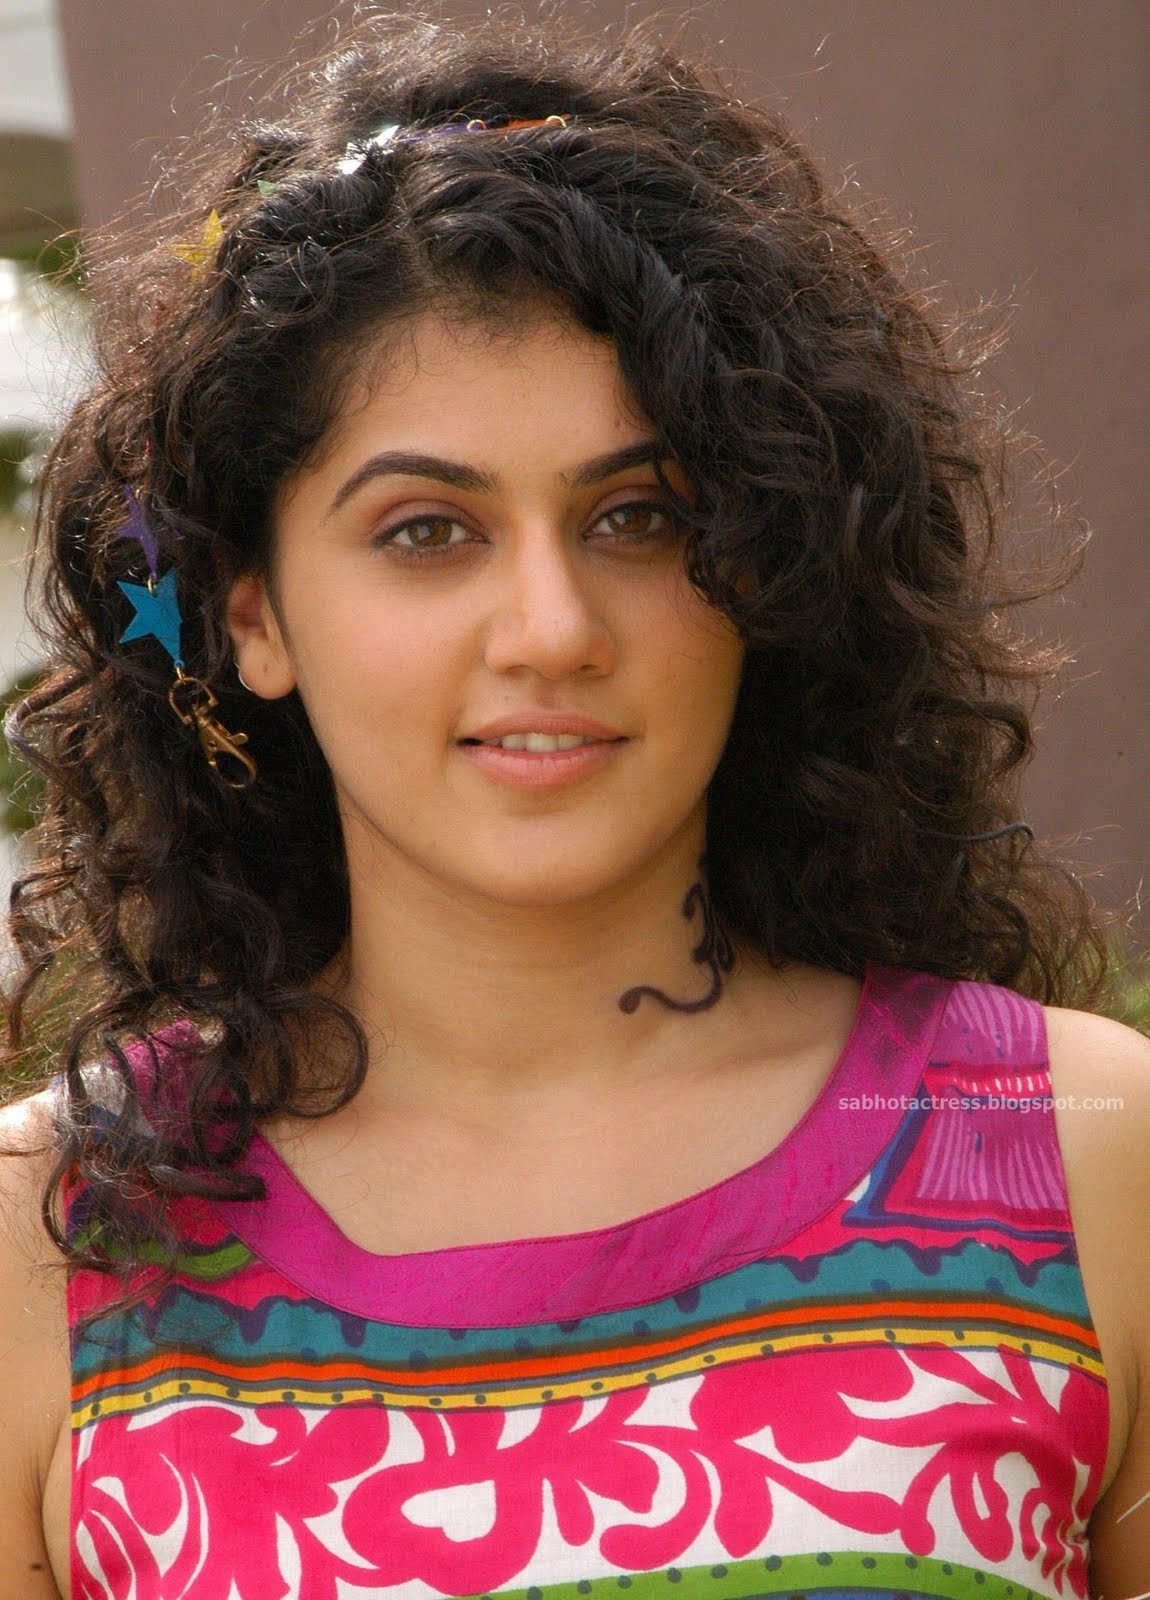 Hot And Cute Photo Gallery in Saree and Modern Dress From Mr.Perfect